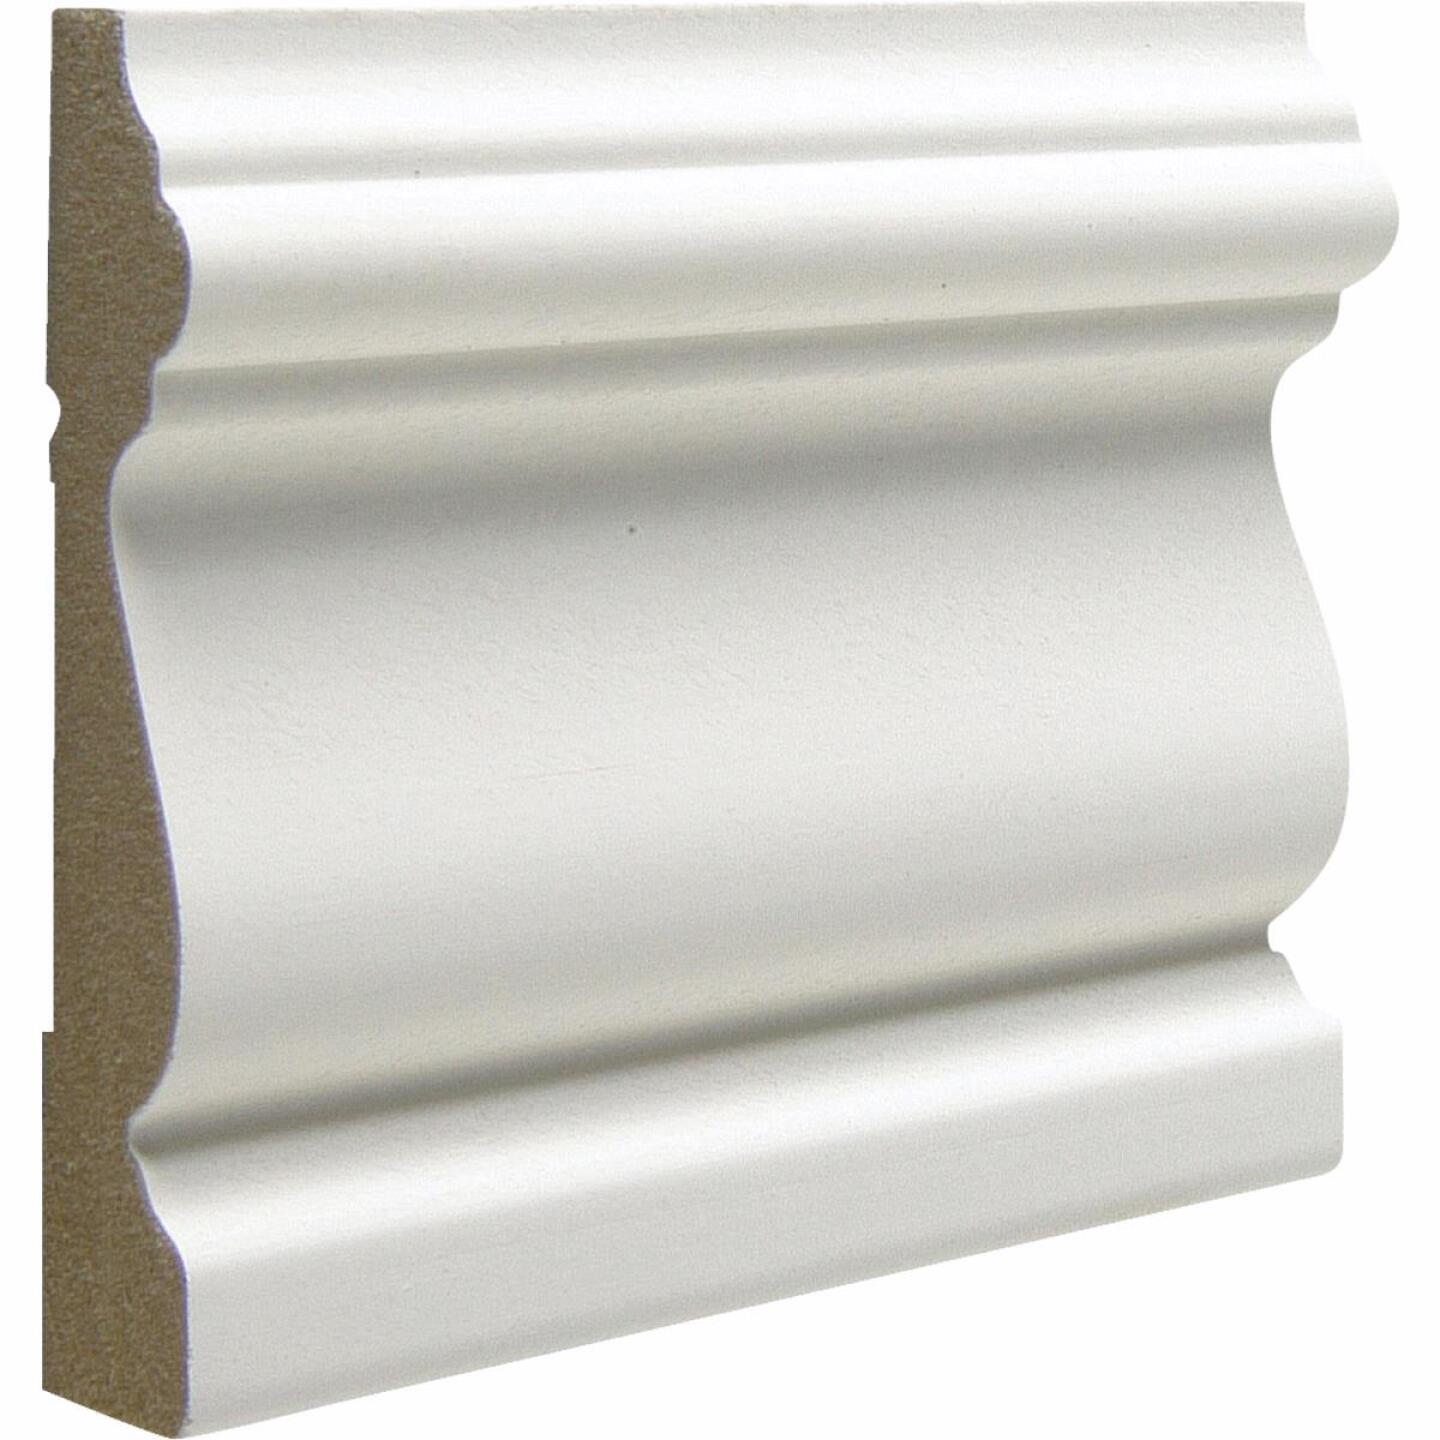 Cedar Creek 312 5/8 In. W. x 3 In. H. x 8 Ft. L. White MDF Victorian Casing Molding Image 1